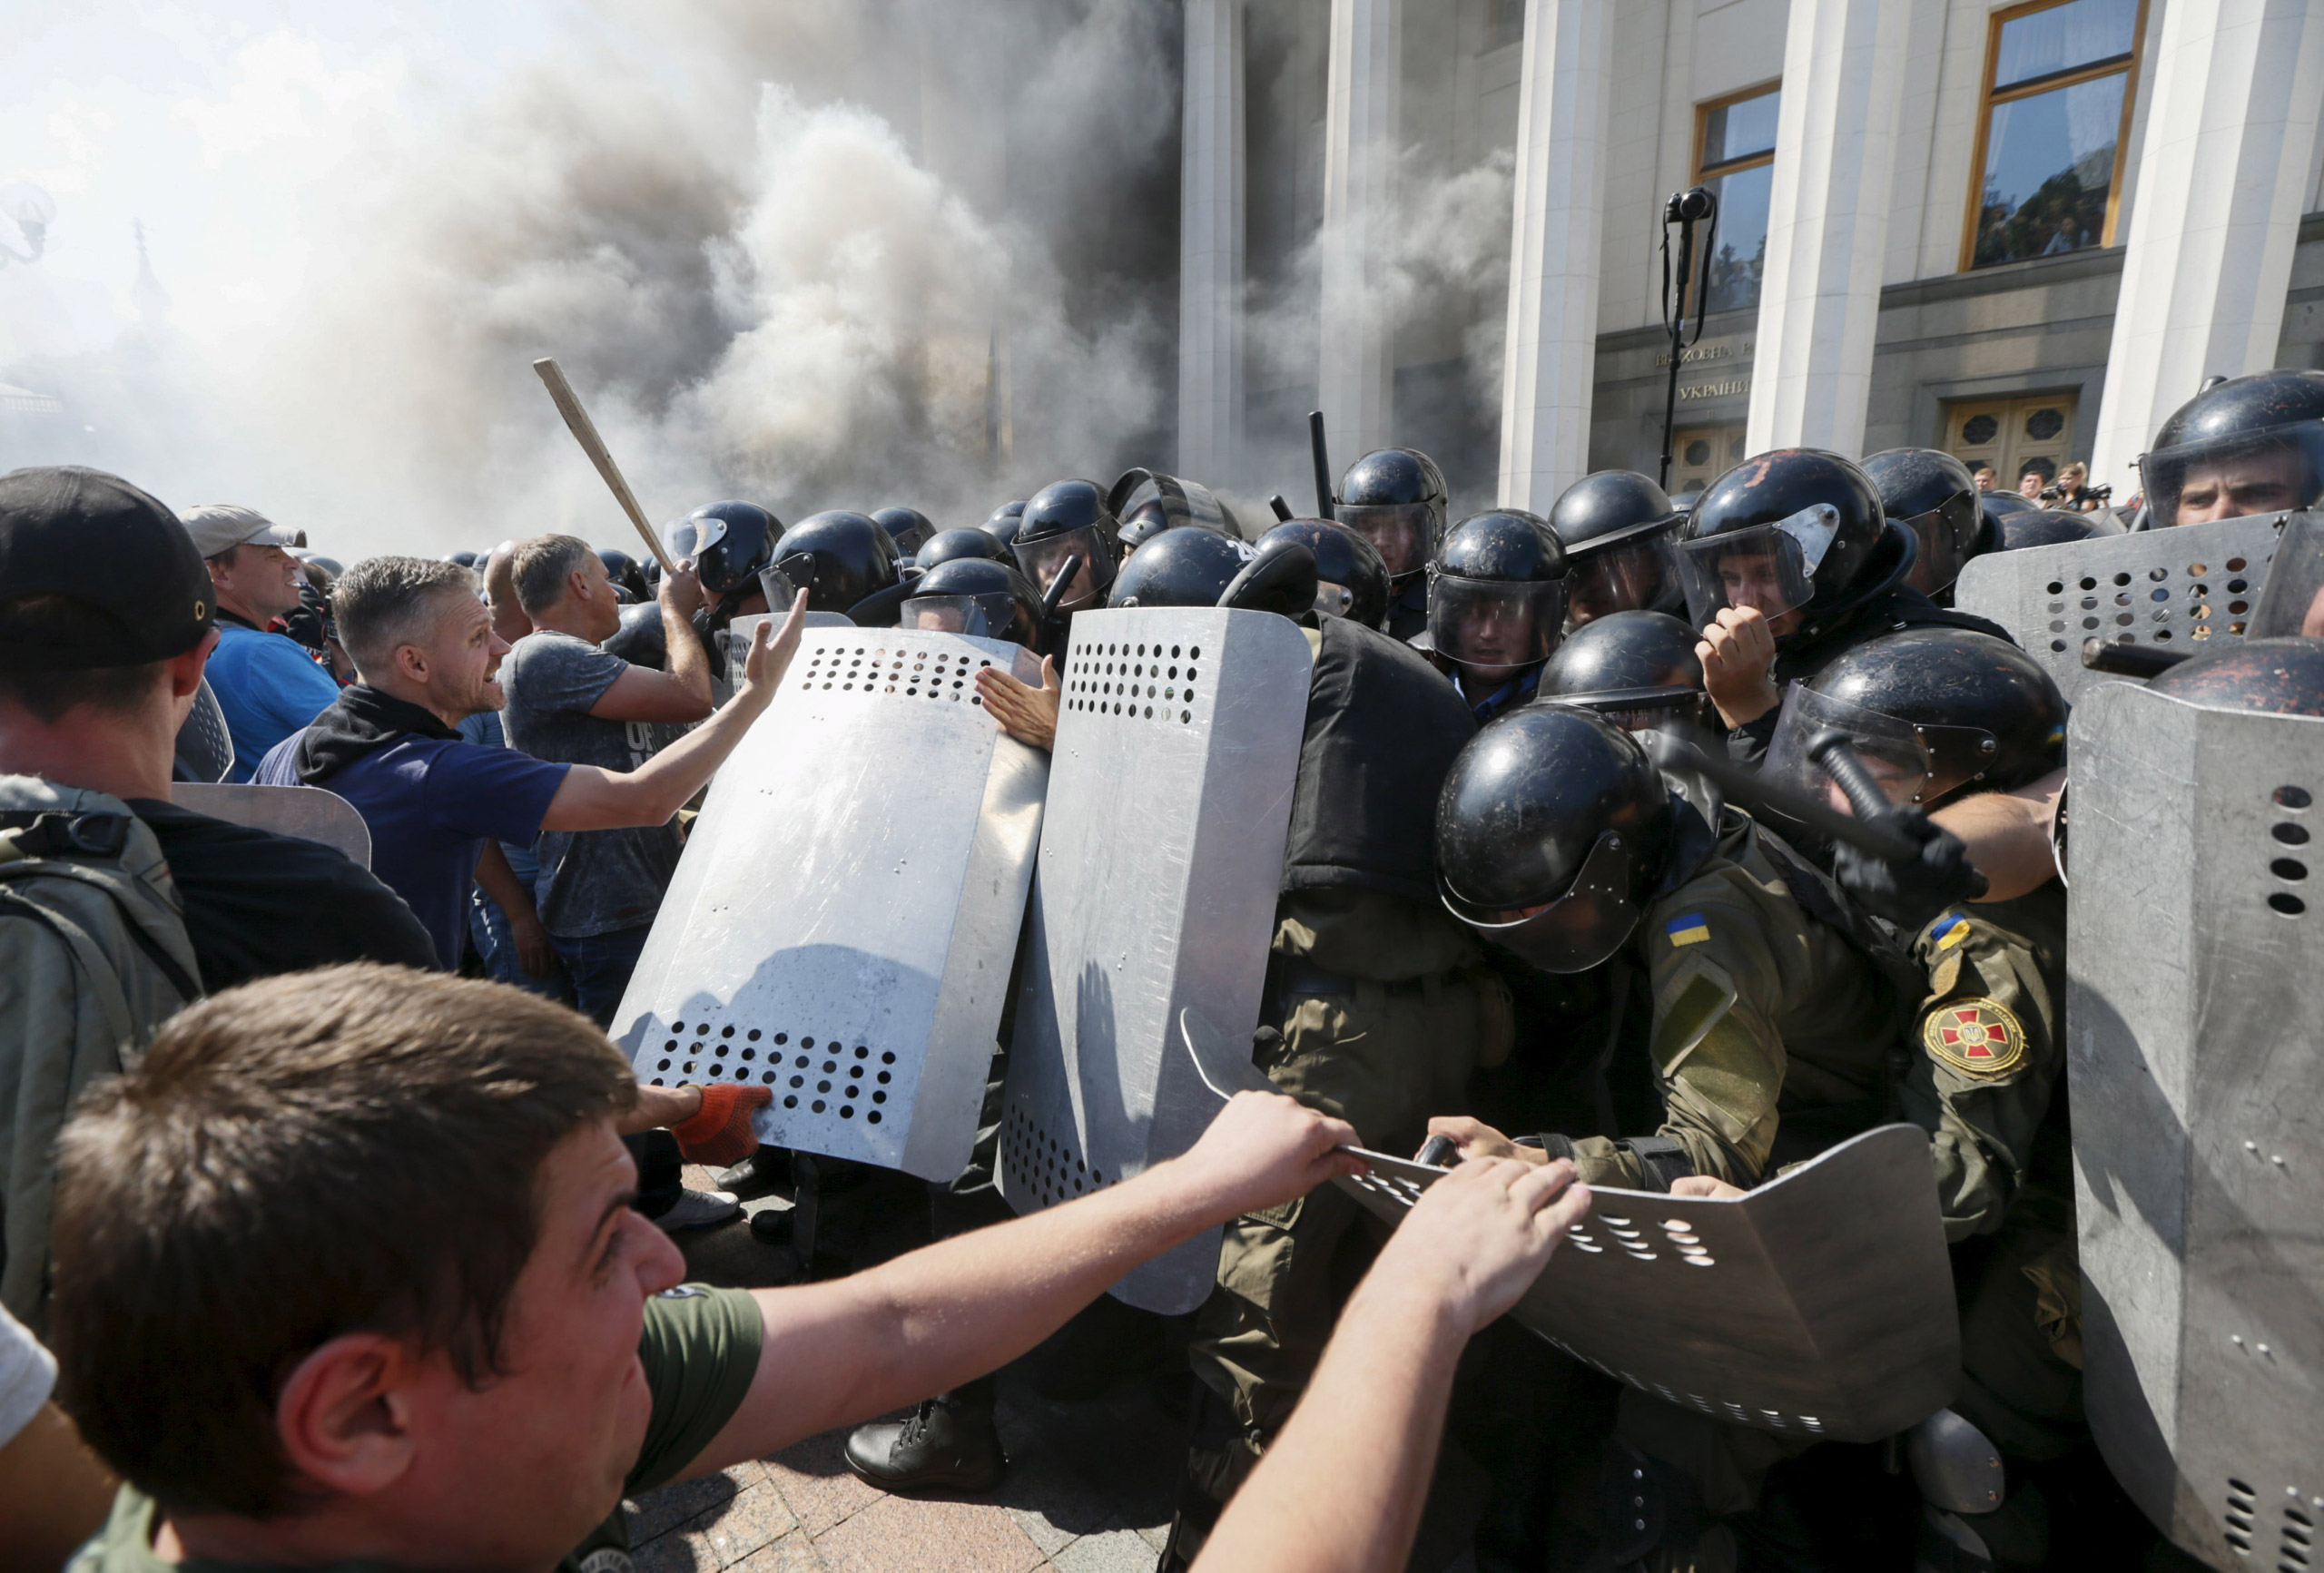 Protesters clash with police outside the parliament building in Kiev, Ukraine, on Aug. 31, 2015.